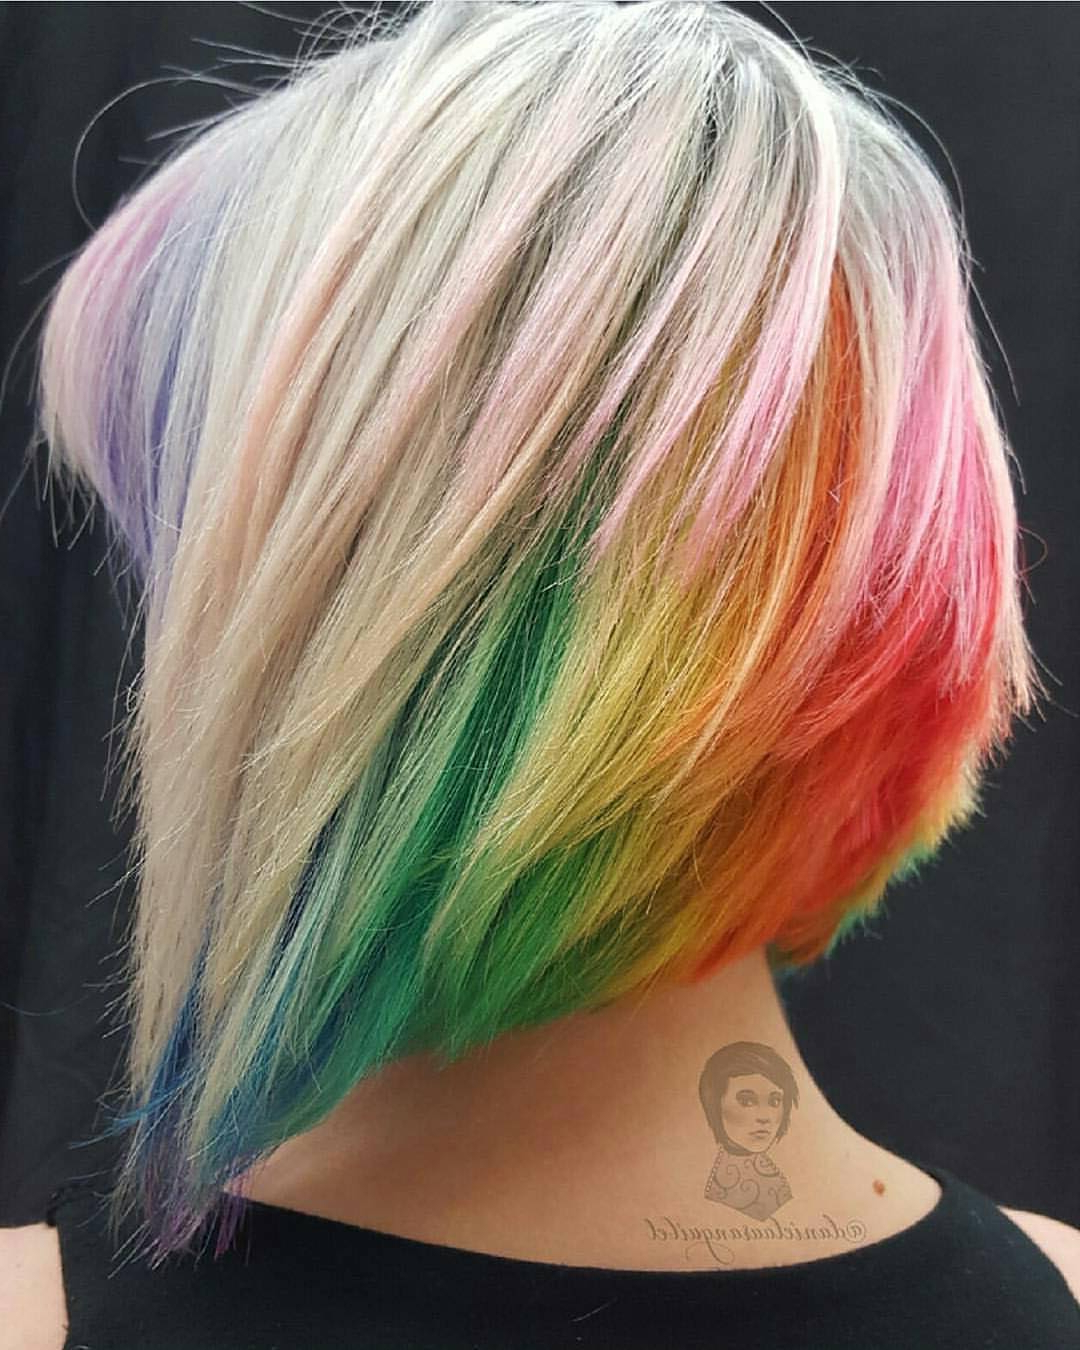 Modern Short Shaggy Bob Hairstyles To Take Over Salons Within Rainbow Bob Haircuts (View 11 of 20)